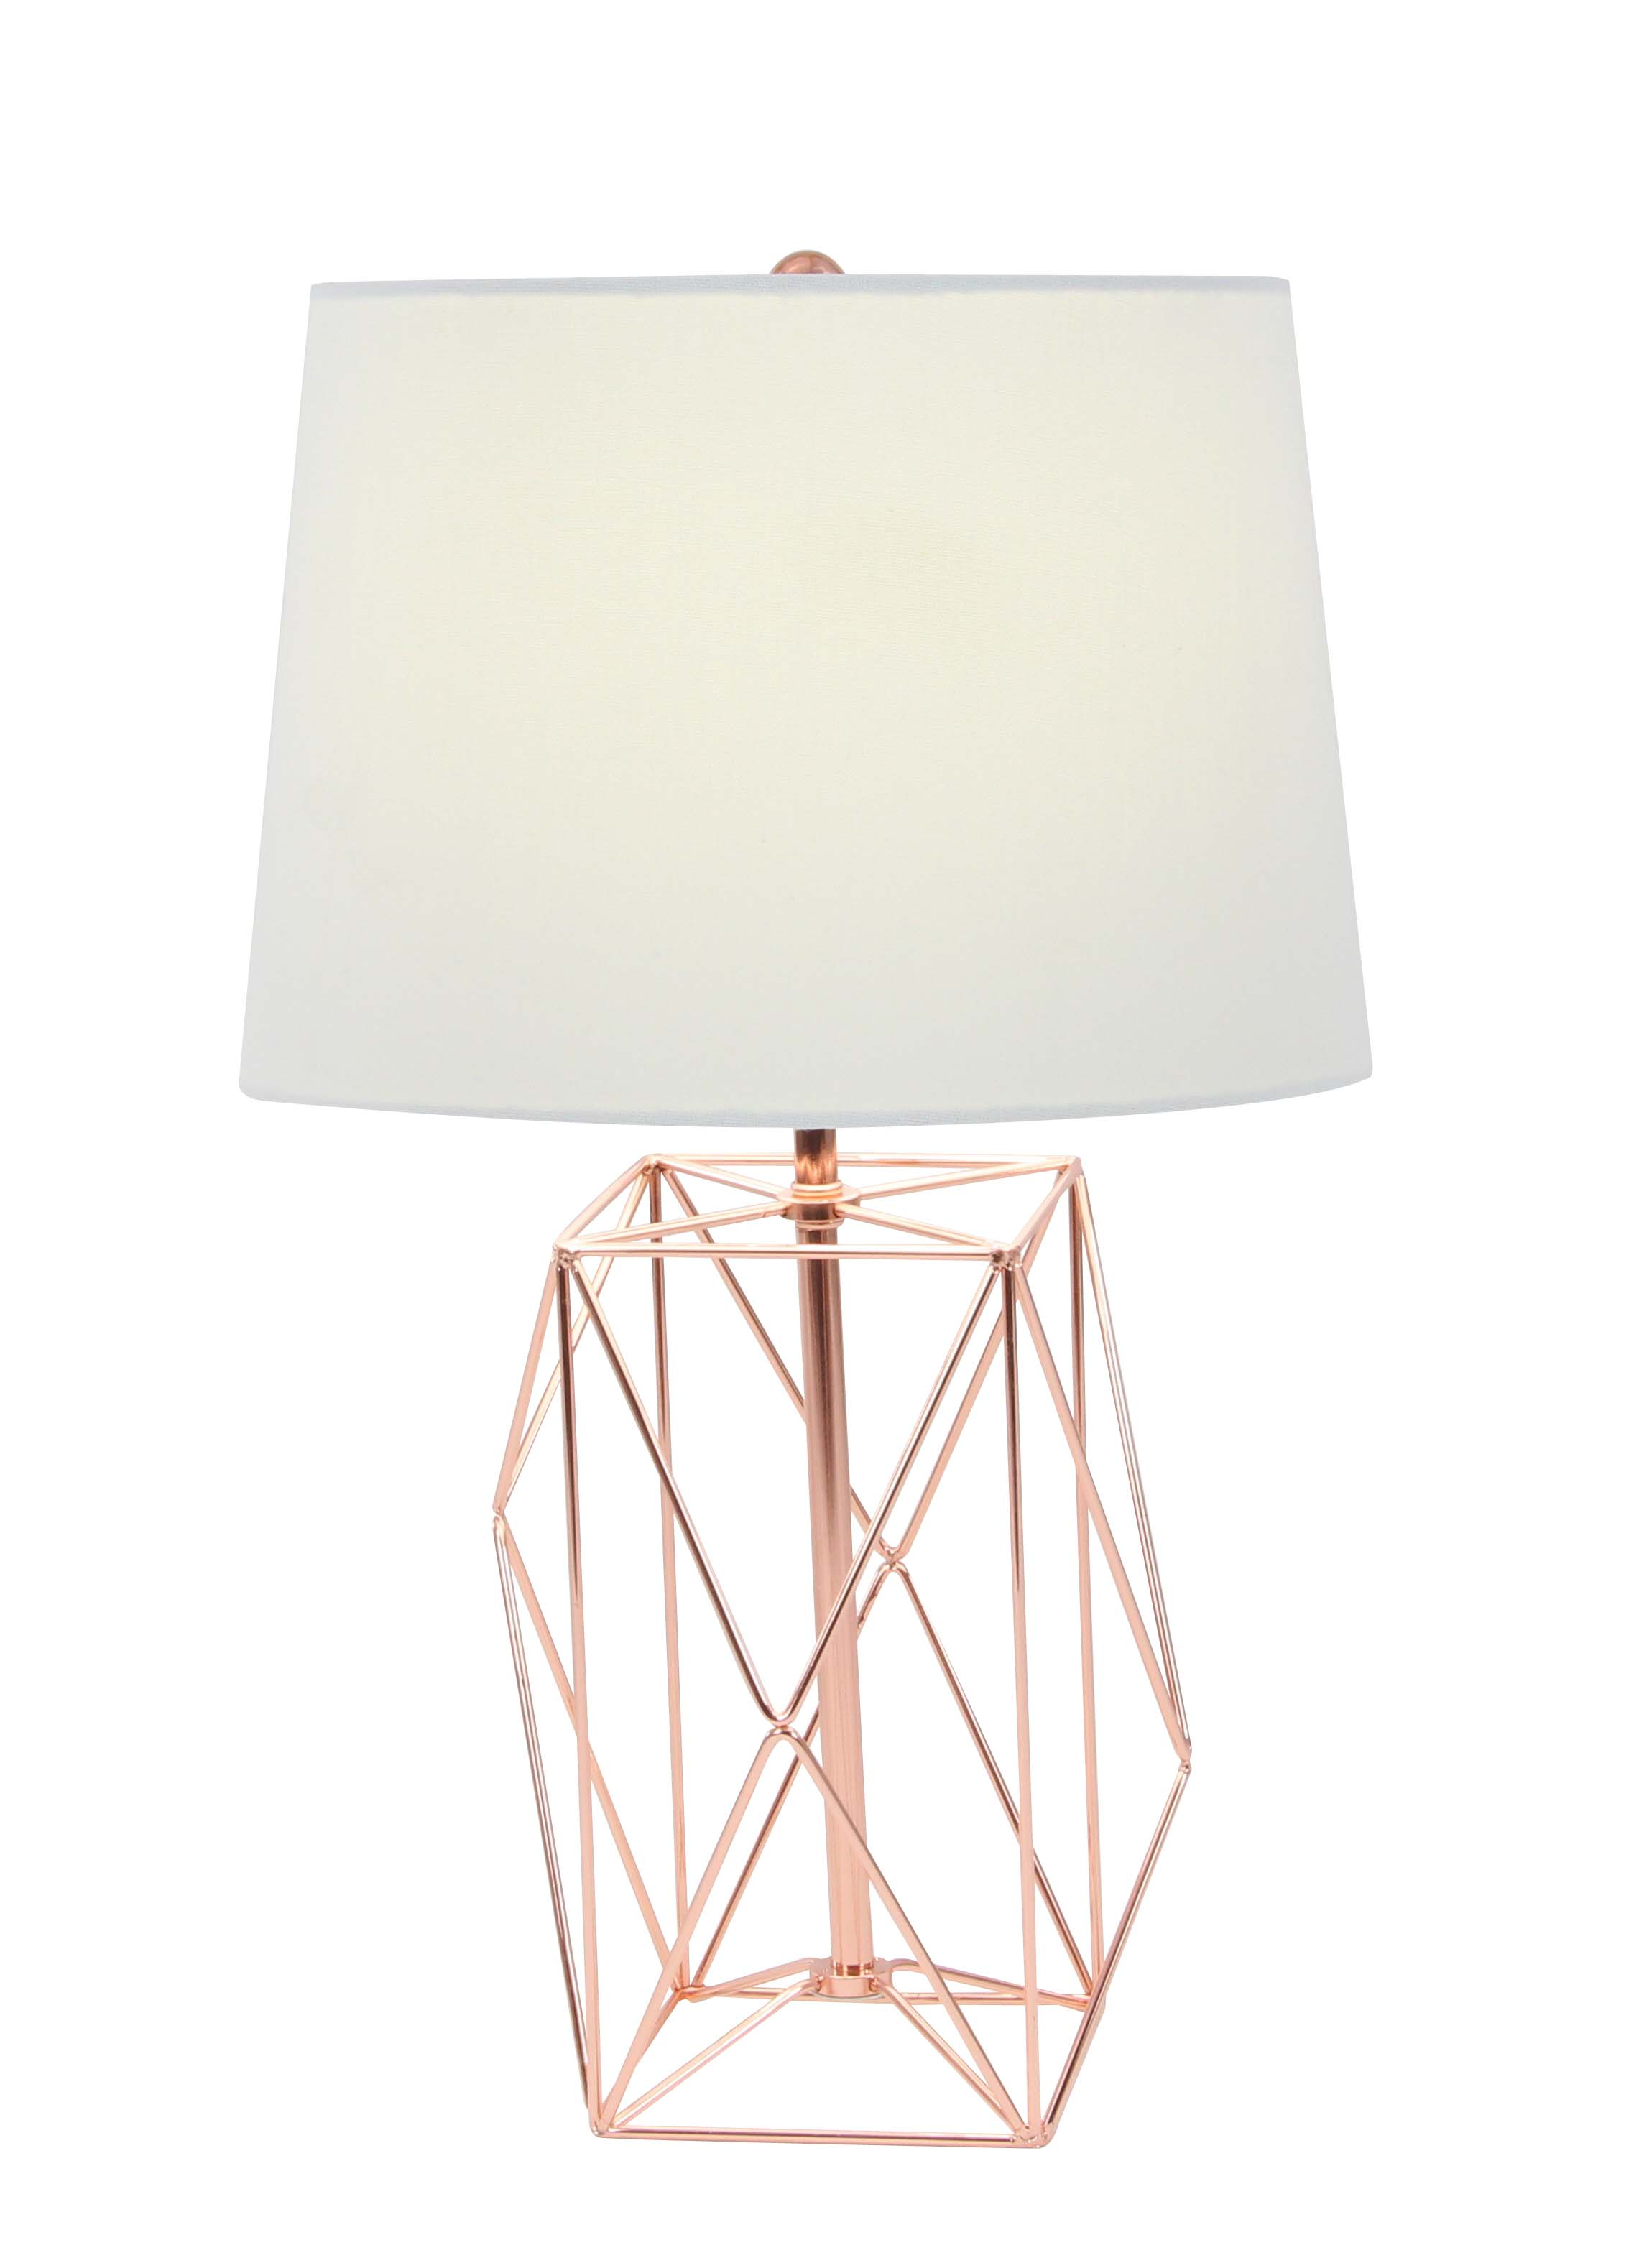 Decmode Contemporary 21 X 13 Inch Asymmetrical Metal Wire Table Lamp, White by DecMode